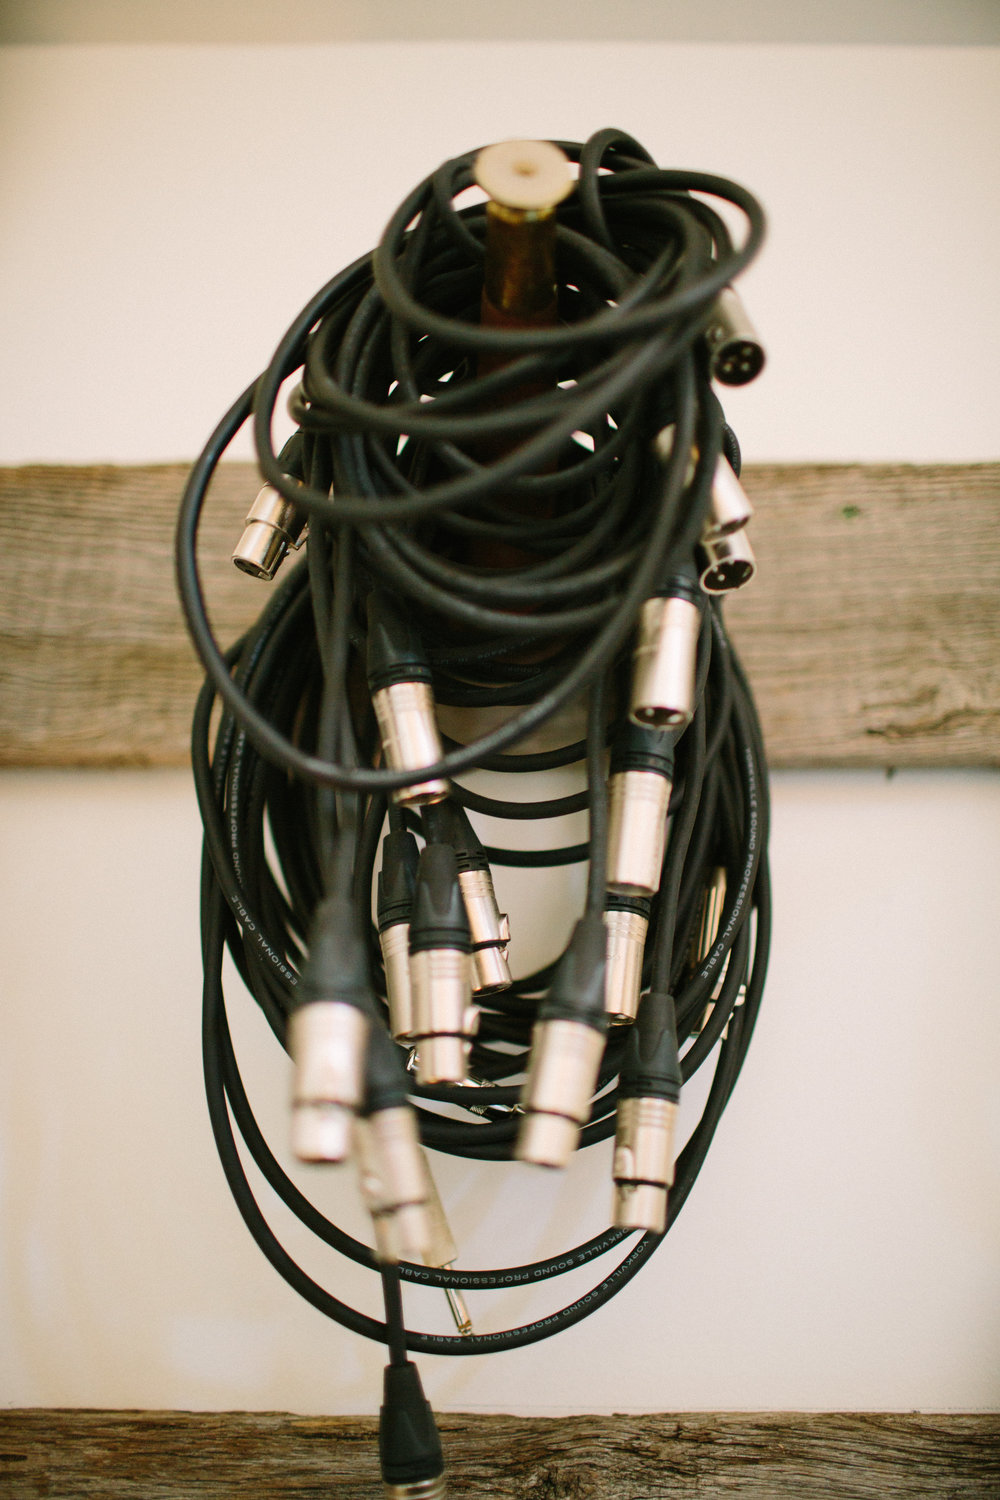 Cables by the dozen